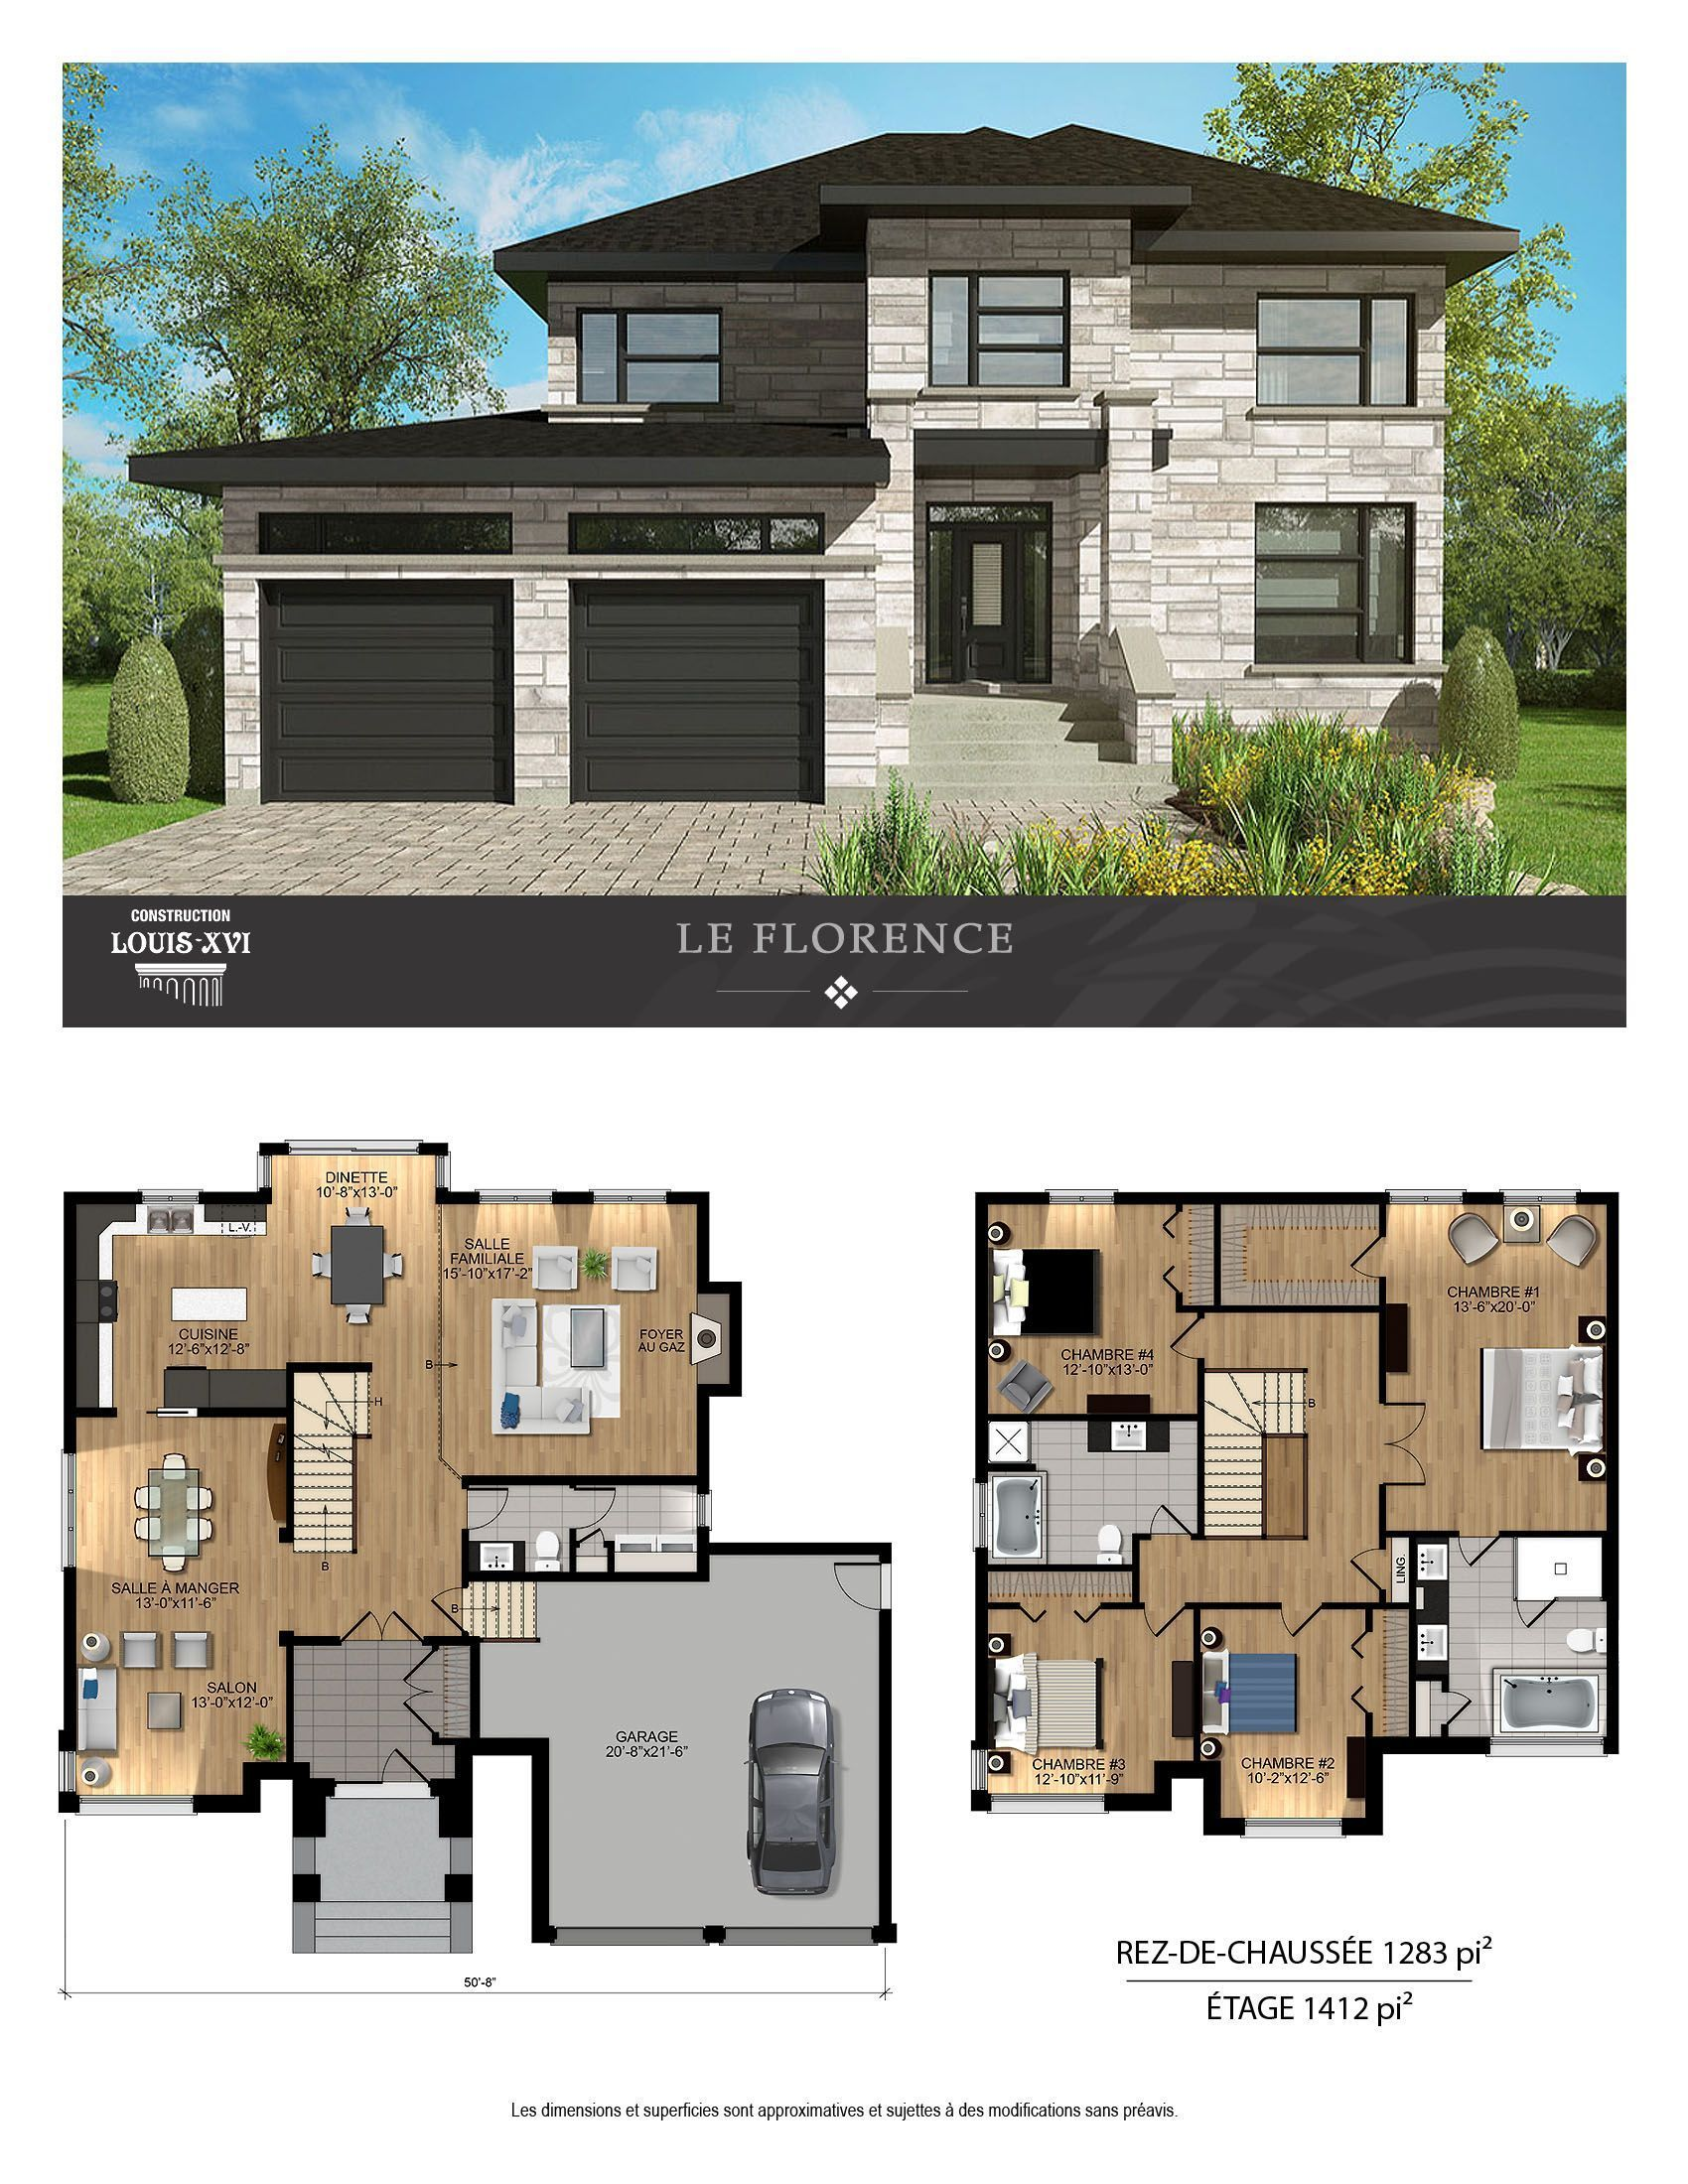 2 Story House For Sale In Blainville Have A Look There Blainville House Story There New Architecture House Sims House Plans Modern House Plans